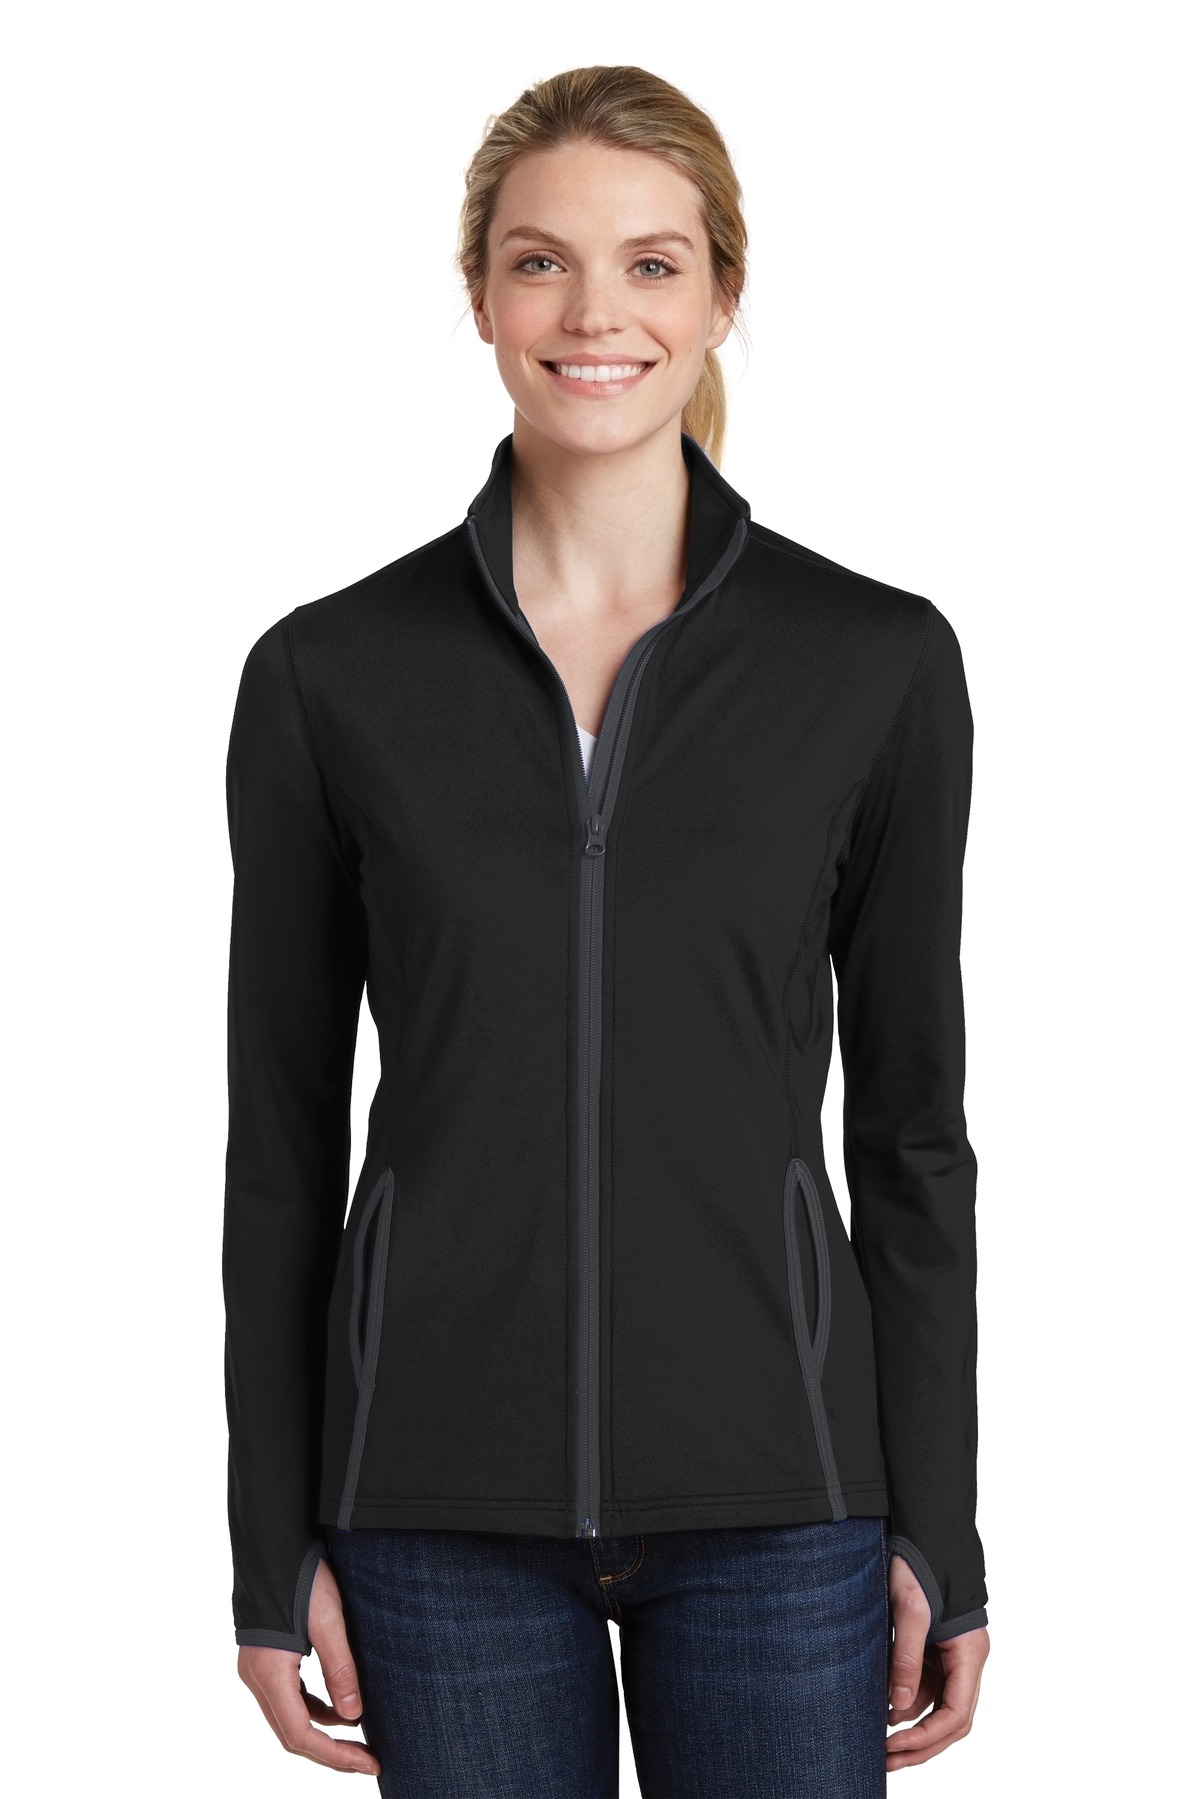 Sport-Tek ®  Ladies Sport-Wick ®  Stretch Contrast Full-Zip Jacket.  LST853 - Black/ Charcoal Grey